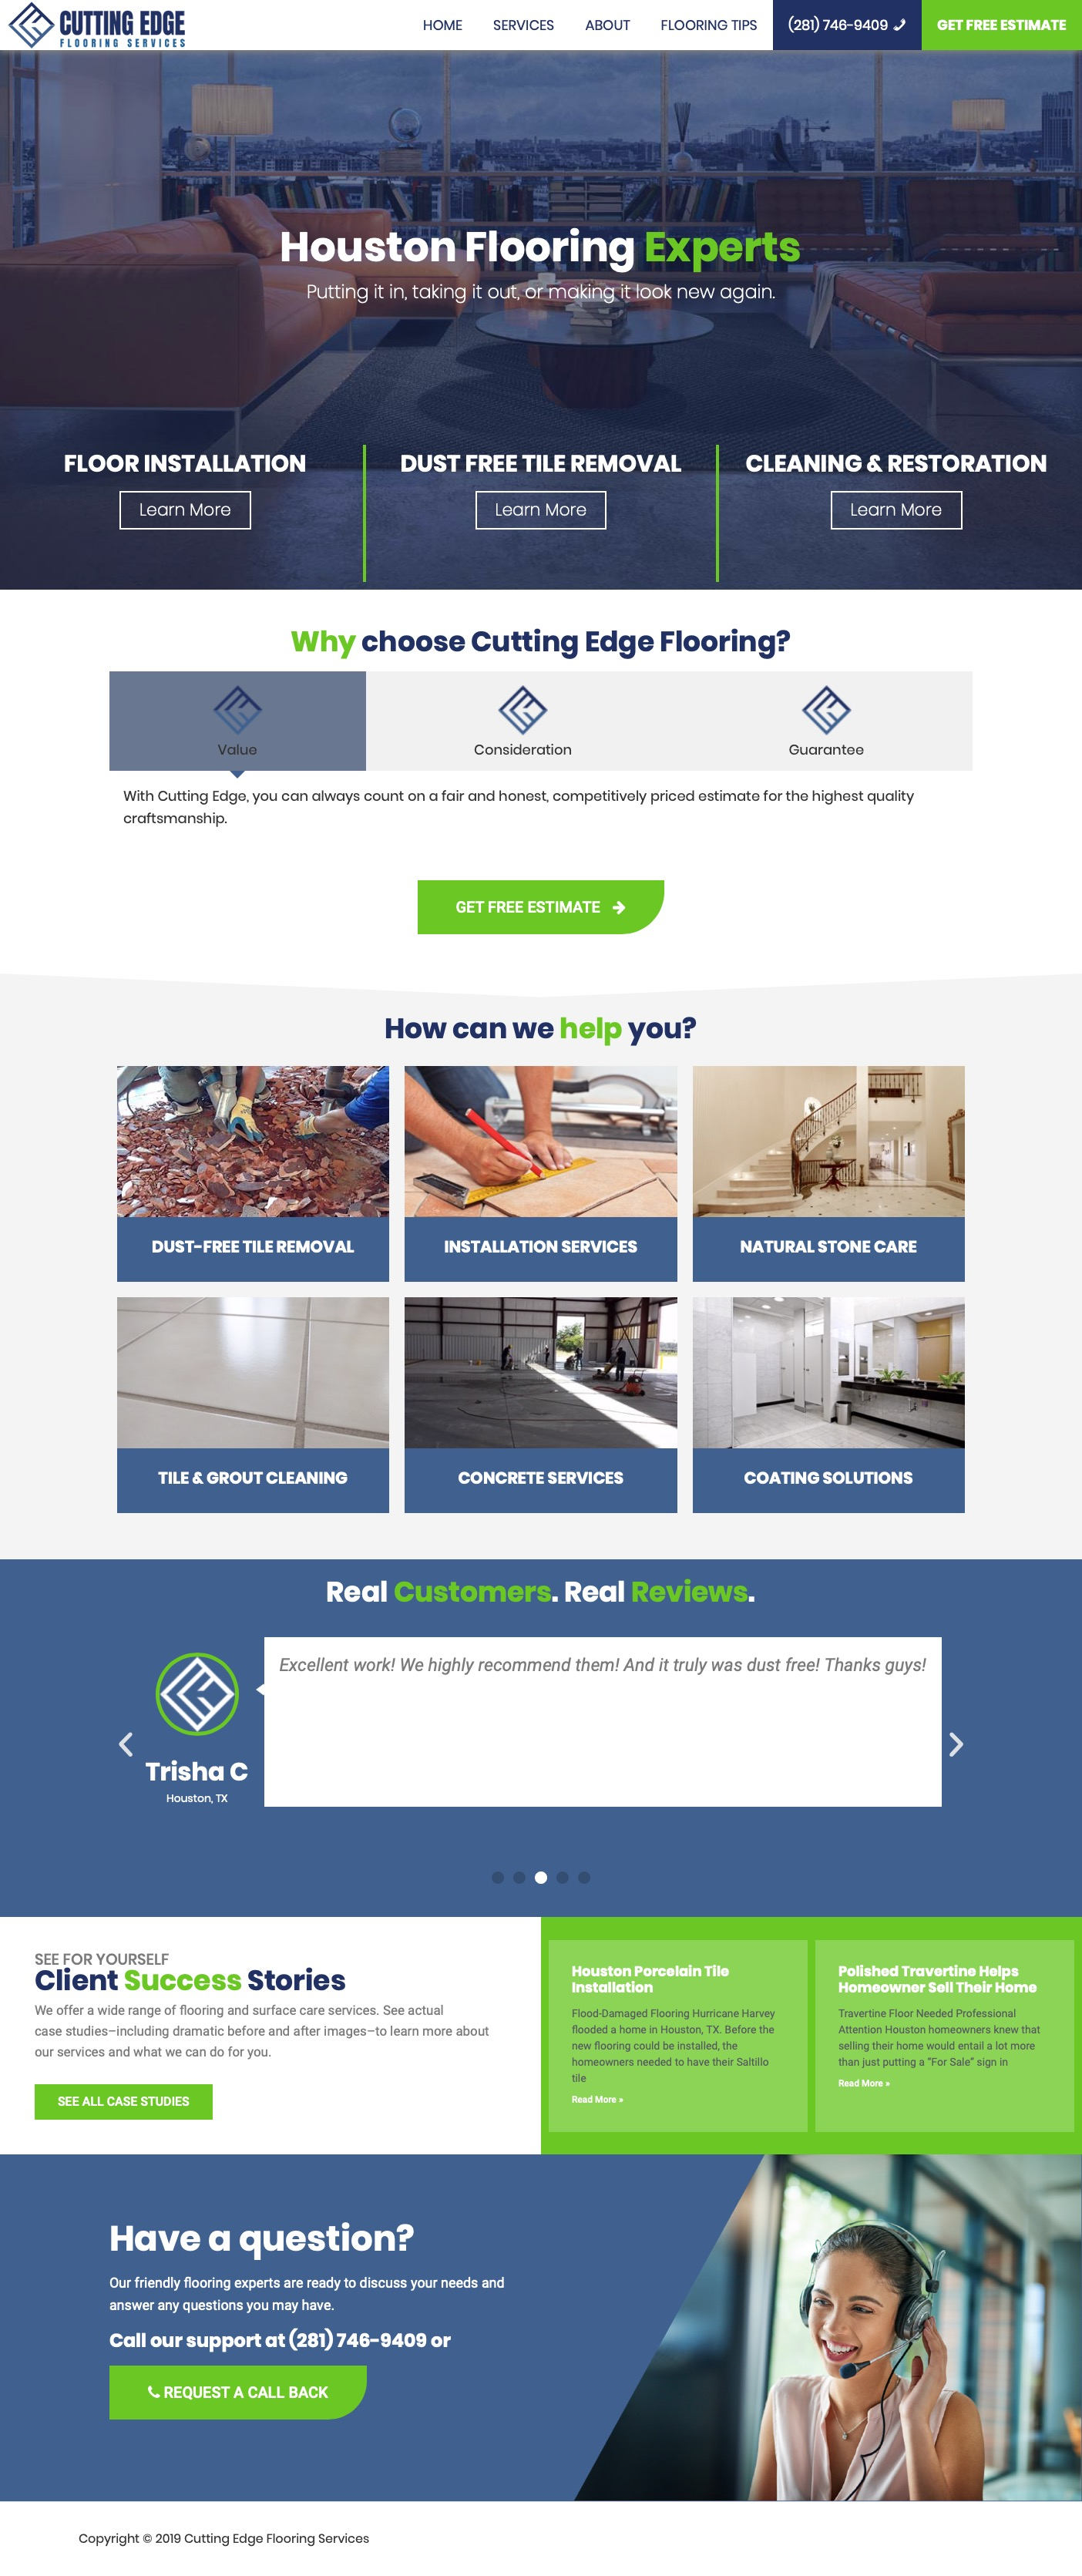 Cutting Edge Flooring Services image